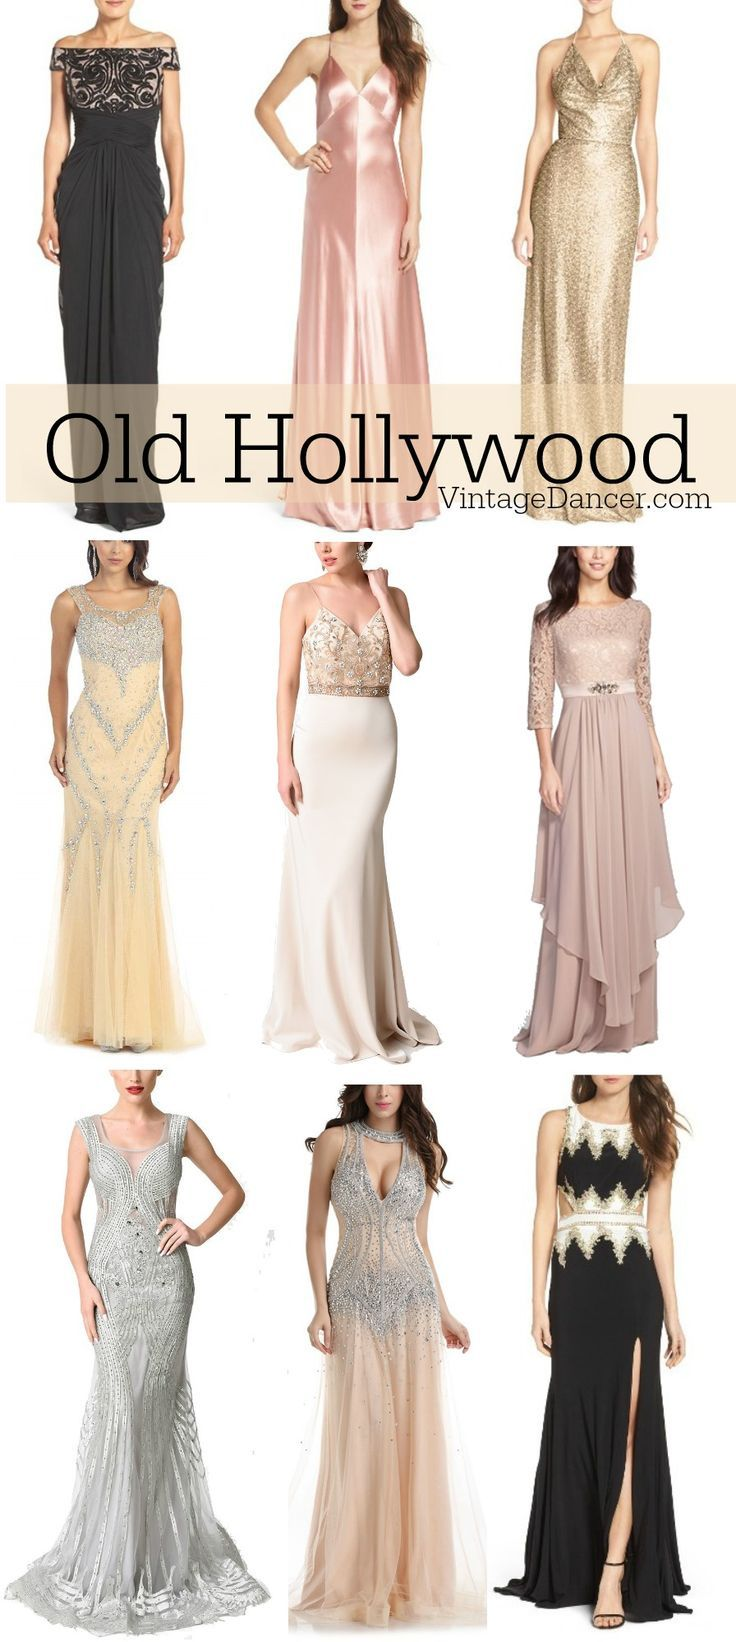 1930s evening dresses and gowns inspired by Old Hollywood fashion and glamour.